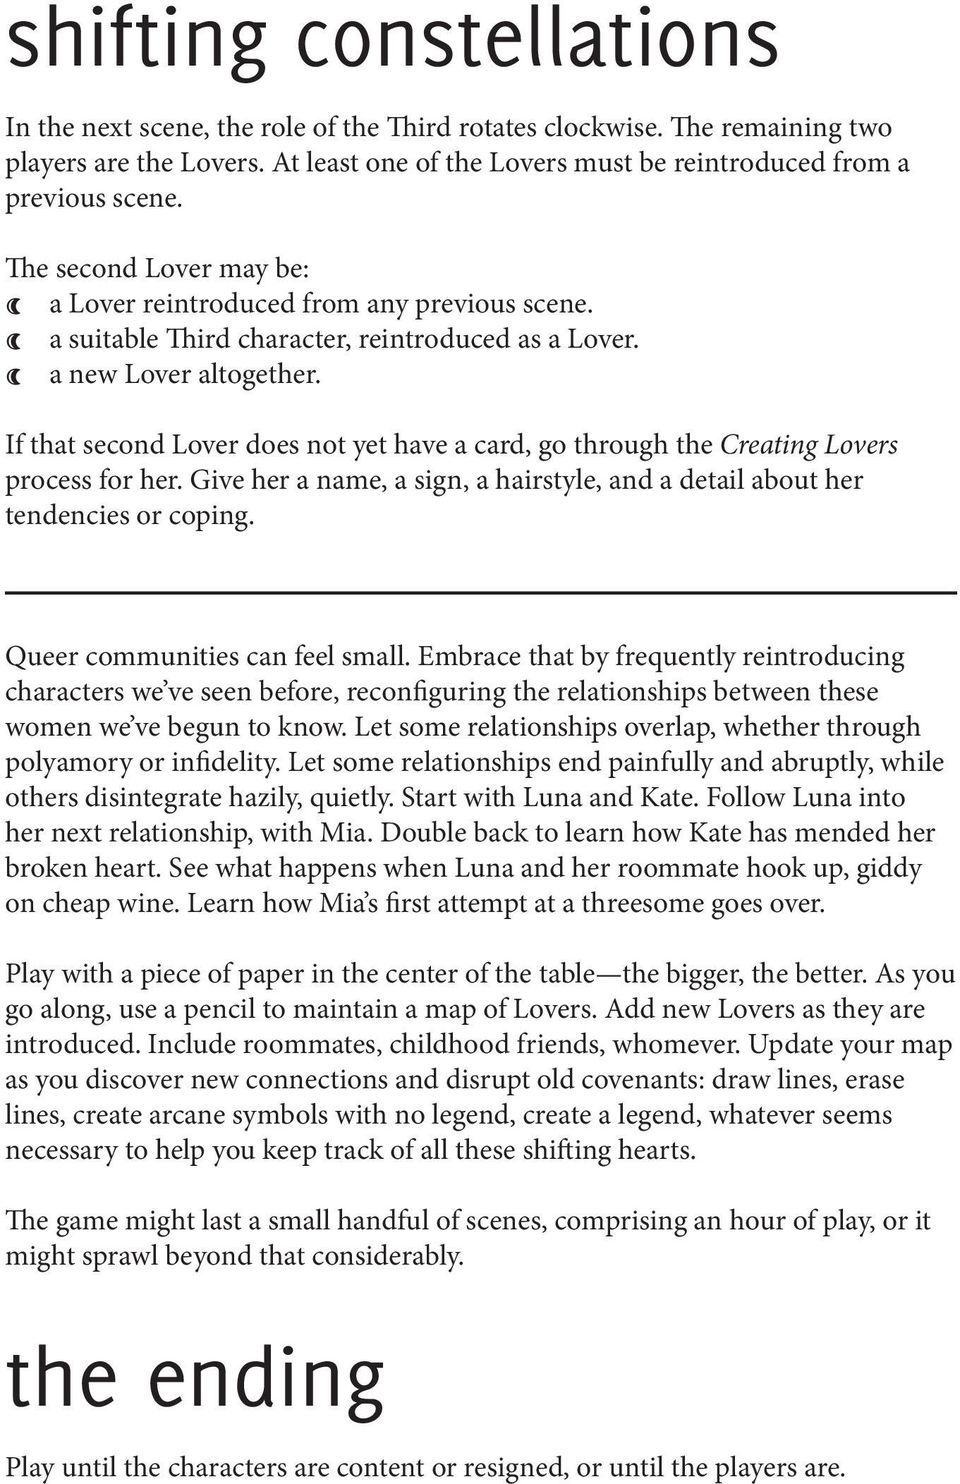 If that second Lover does not yet have a card, go through the Creating Lovers process for her. Give her a name, a sign, a hairstyle, and a detail about her tendencies or coping.